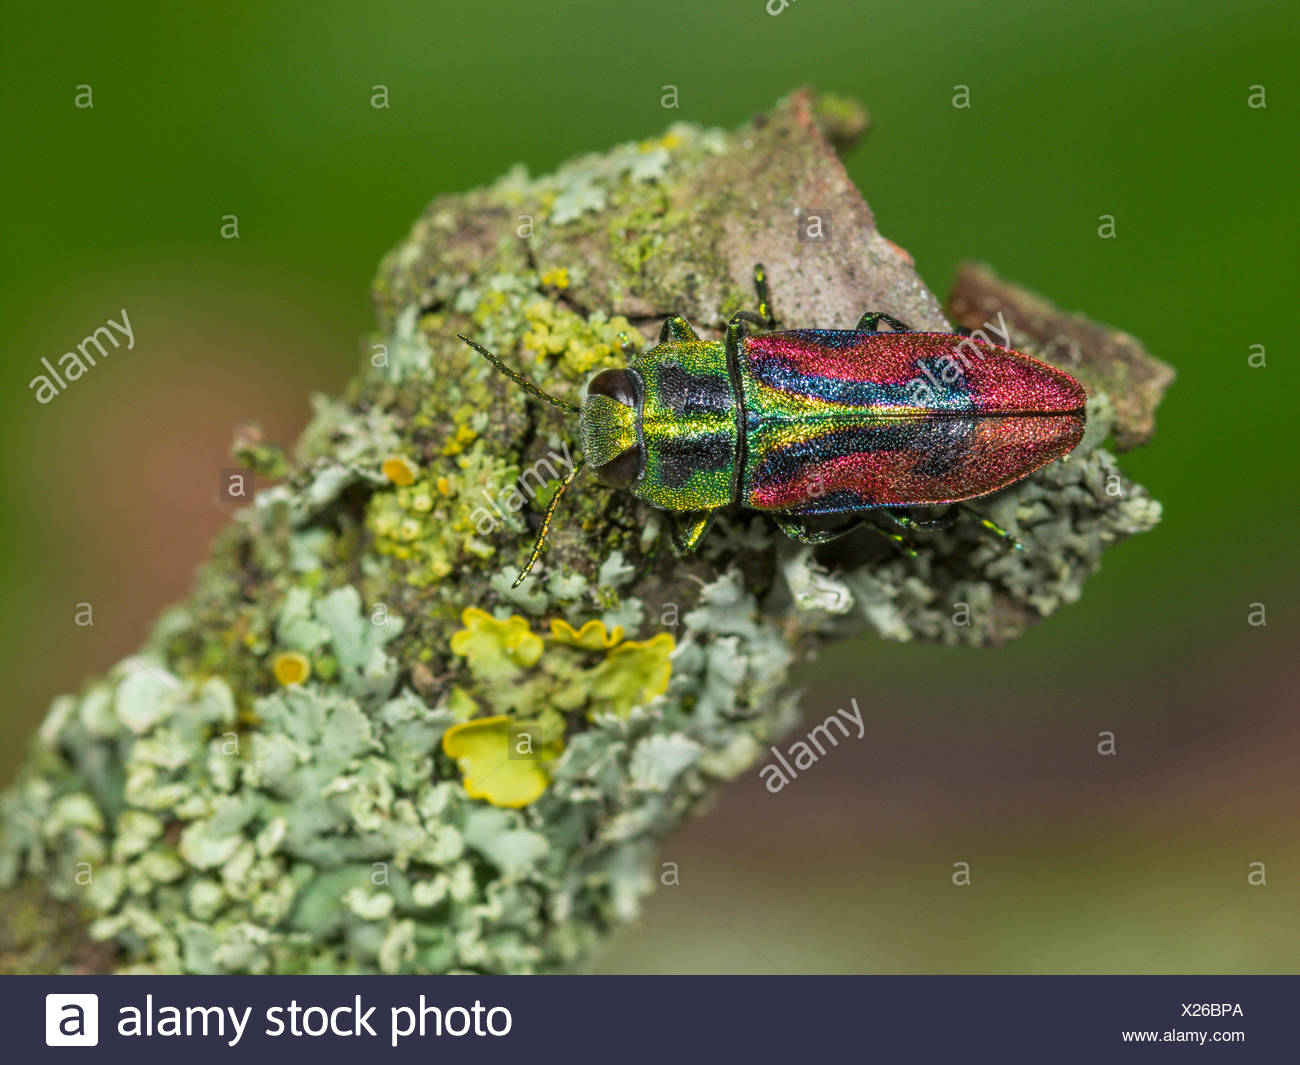 Jewel beetle, Wood-boring beetle (Anthaxia candens), male sitting on a branch, Germany - Stock Image